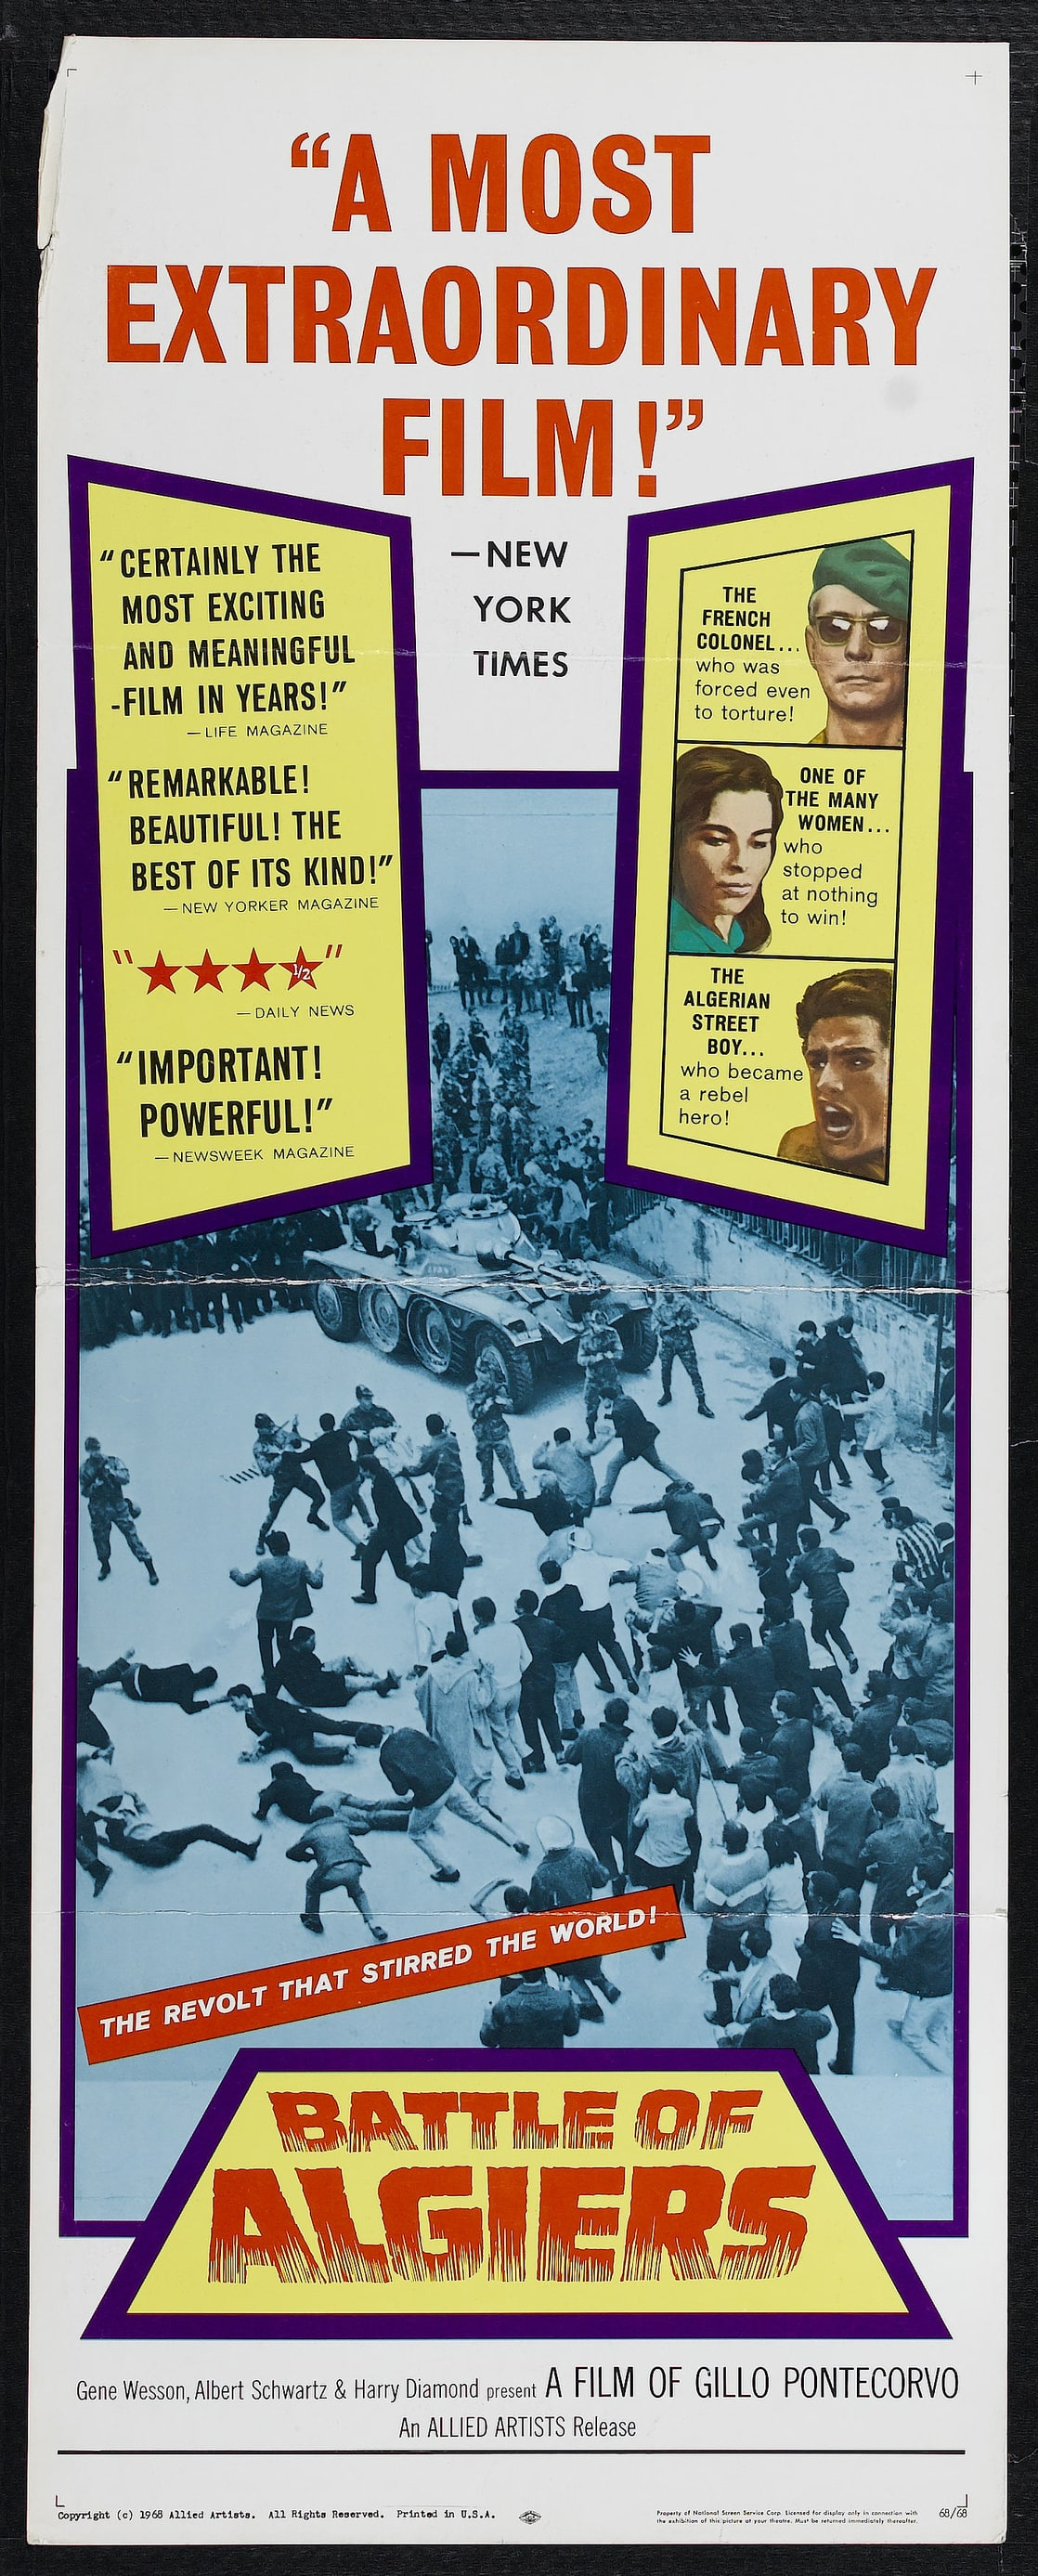 battle of algiers One of the most influential political films in history, the battle of algiers, by gillo pontecorvo, vividly re-creates a key year in the tumultuous algerian struggle for independence from the occupying french in the 1950s as violence escalates on both sides, children shoot soldiers at point-blank.